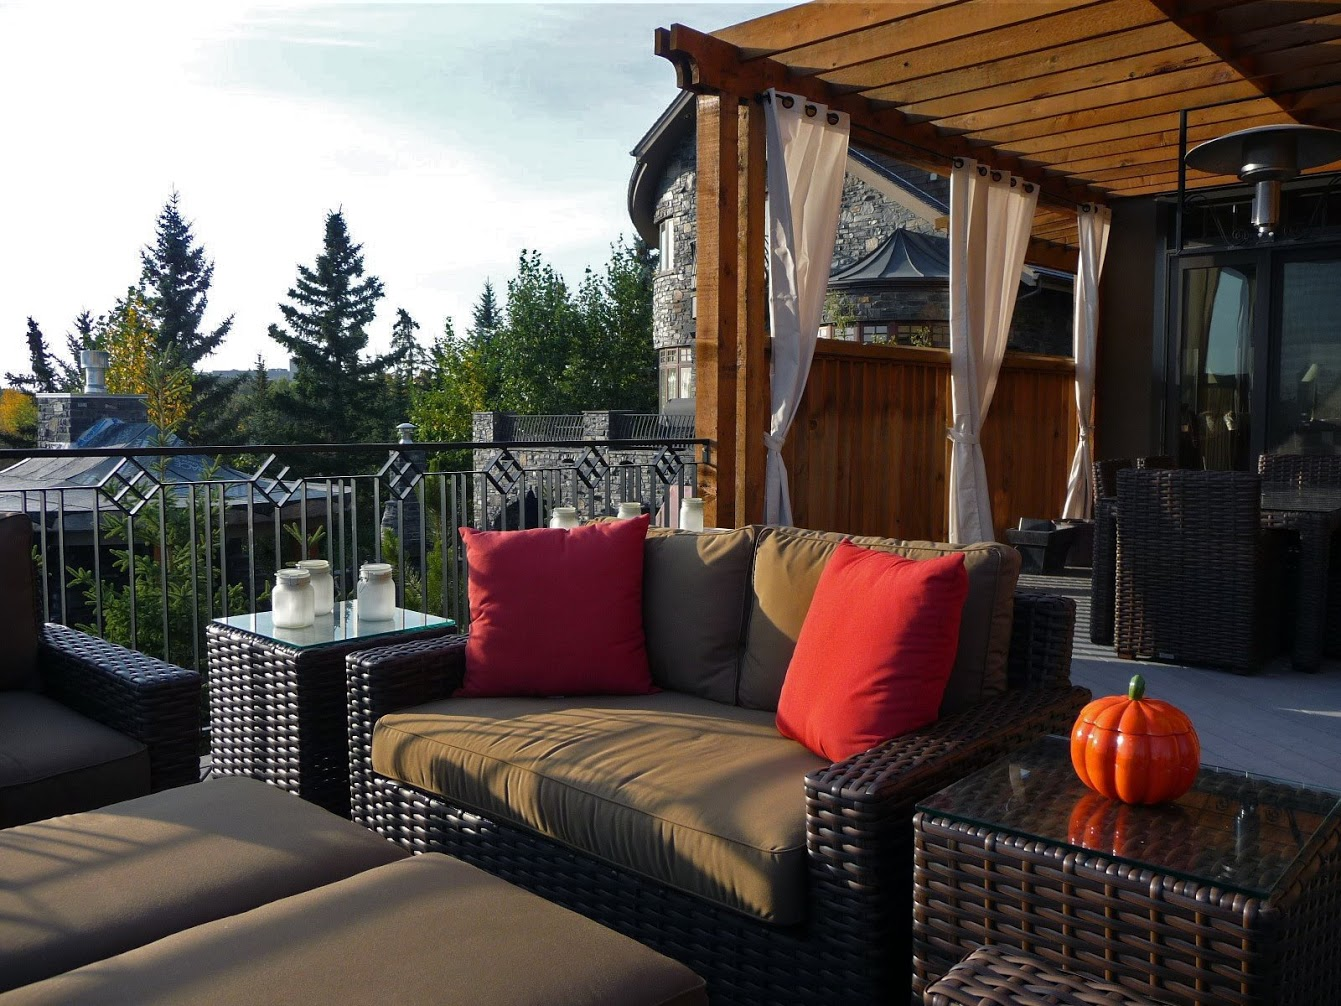 ddla-design-calgary-upper patio sitting area 2.jpg